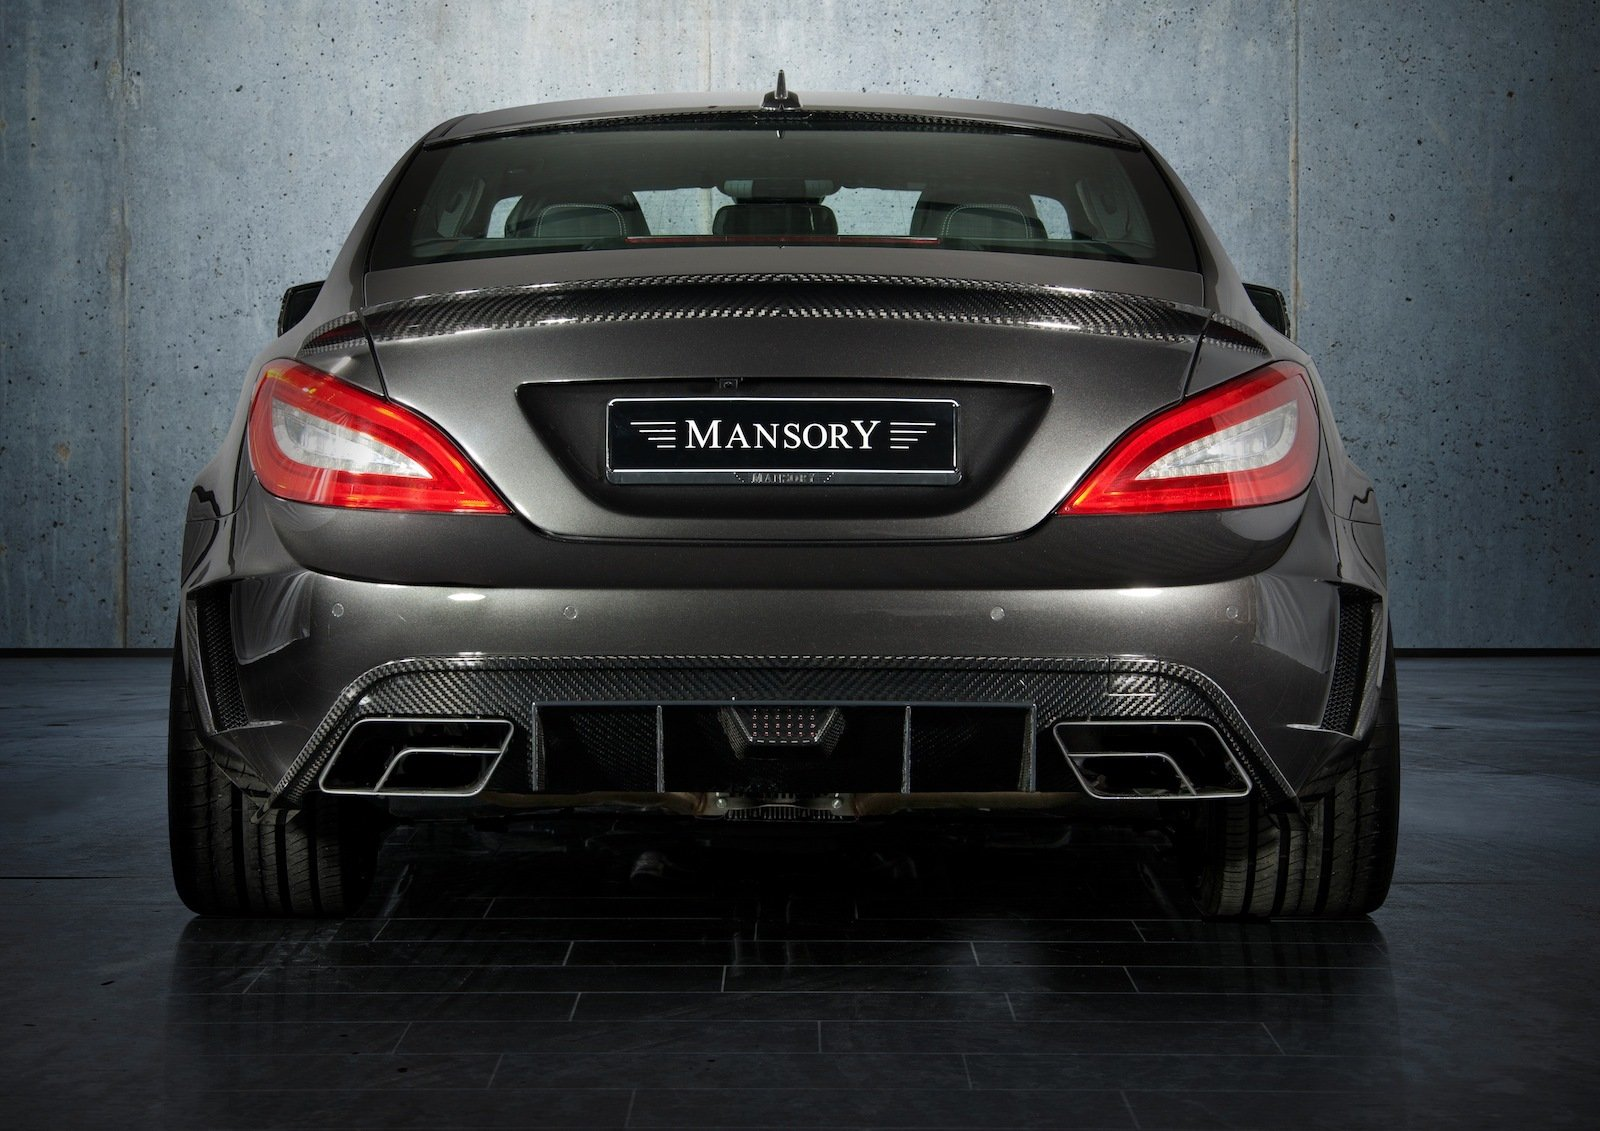 http://pictures.topspeed.com/IMG/crop/201203/2012-mercedes-cls63-amg-b-2_1600x0w.jpg